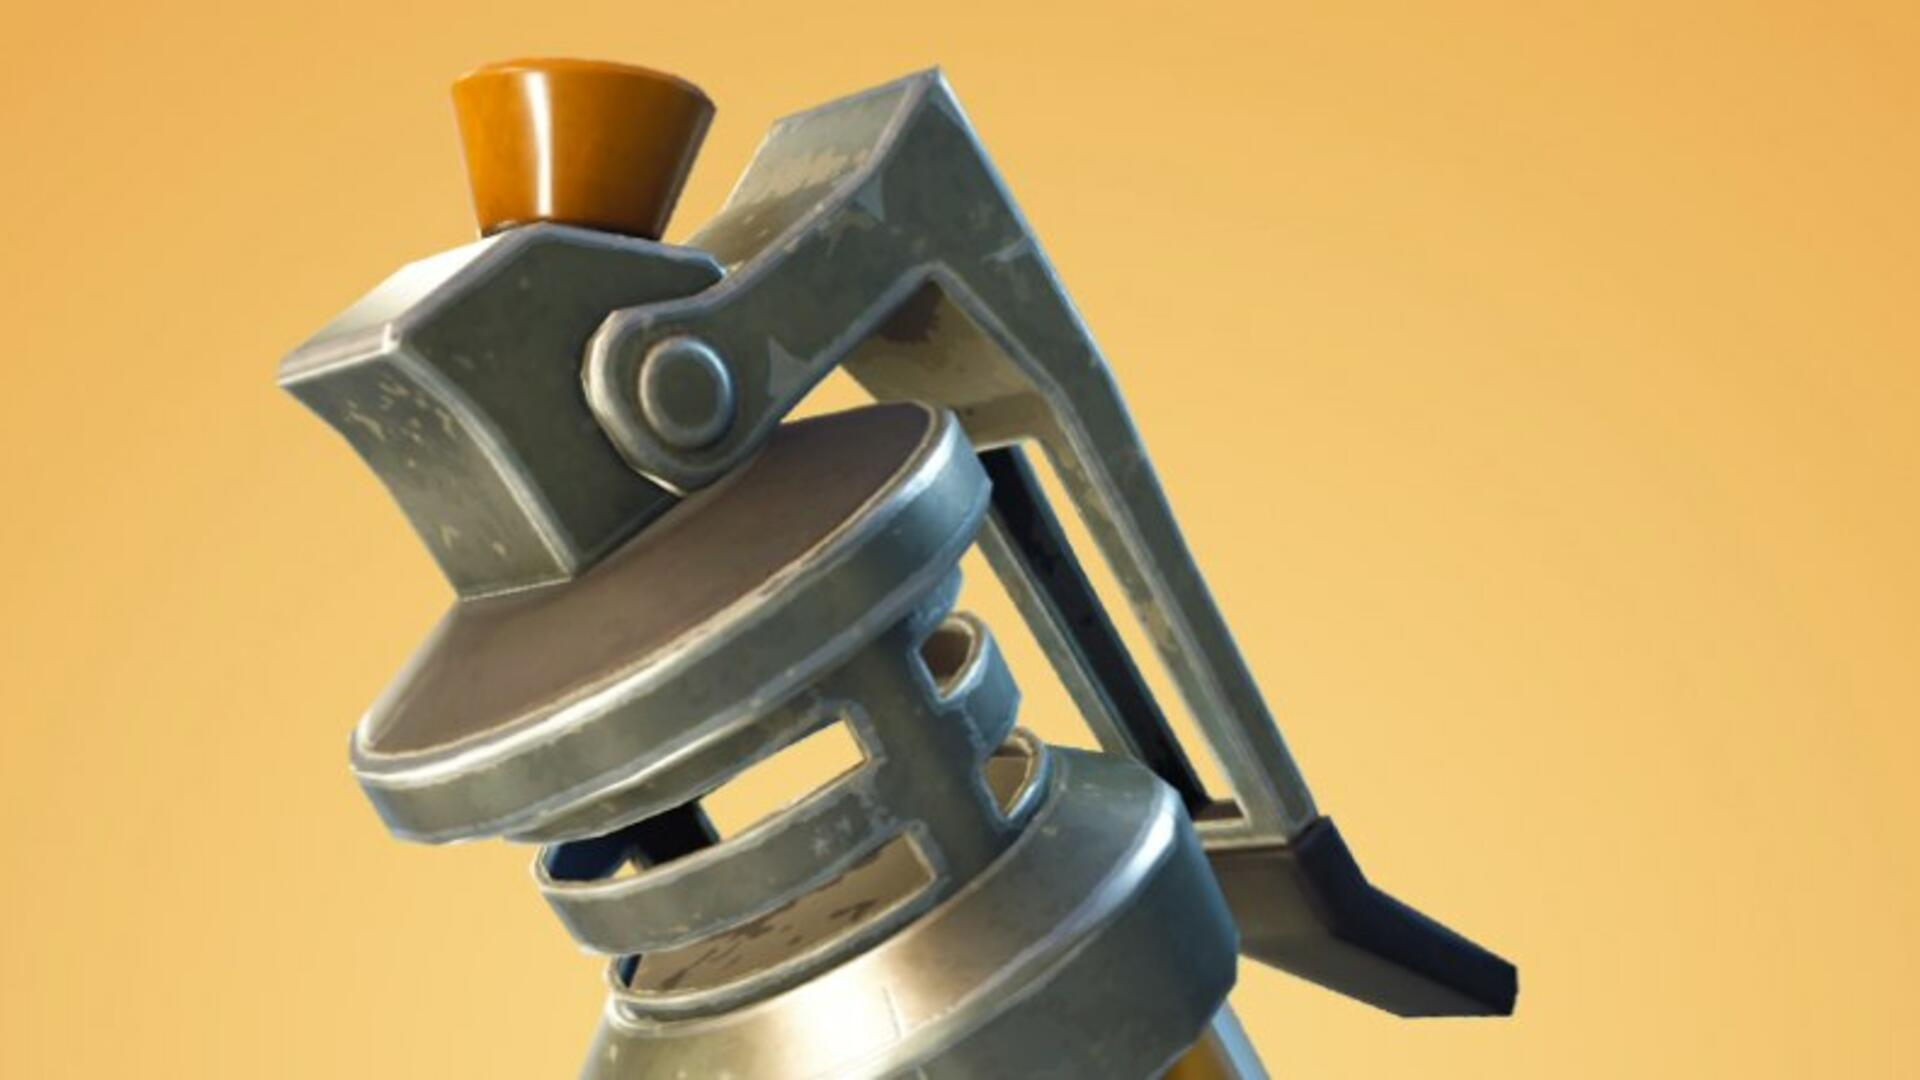 Fortnite Stink Bomb Added in V4.4 Content Update Along With Final Fight Limited Time Mode